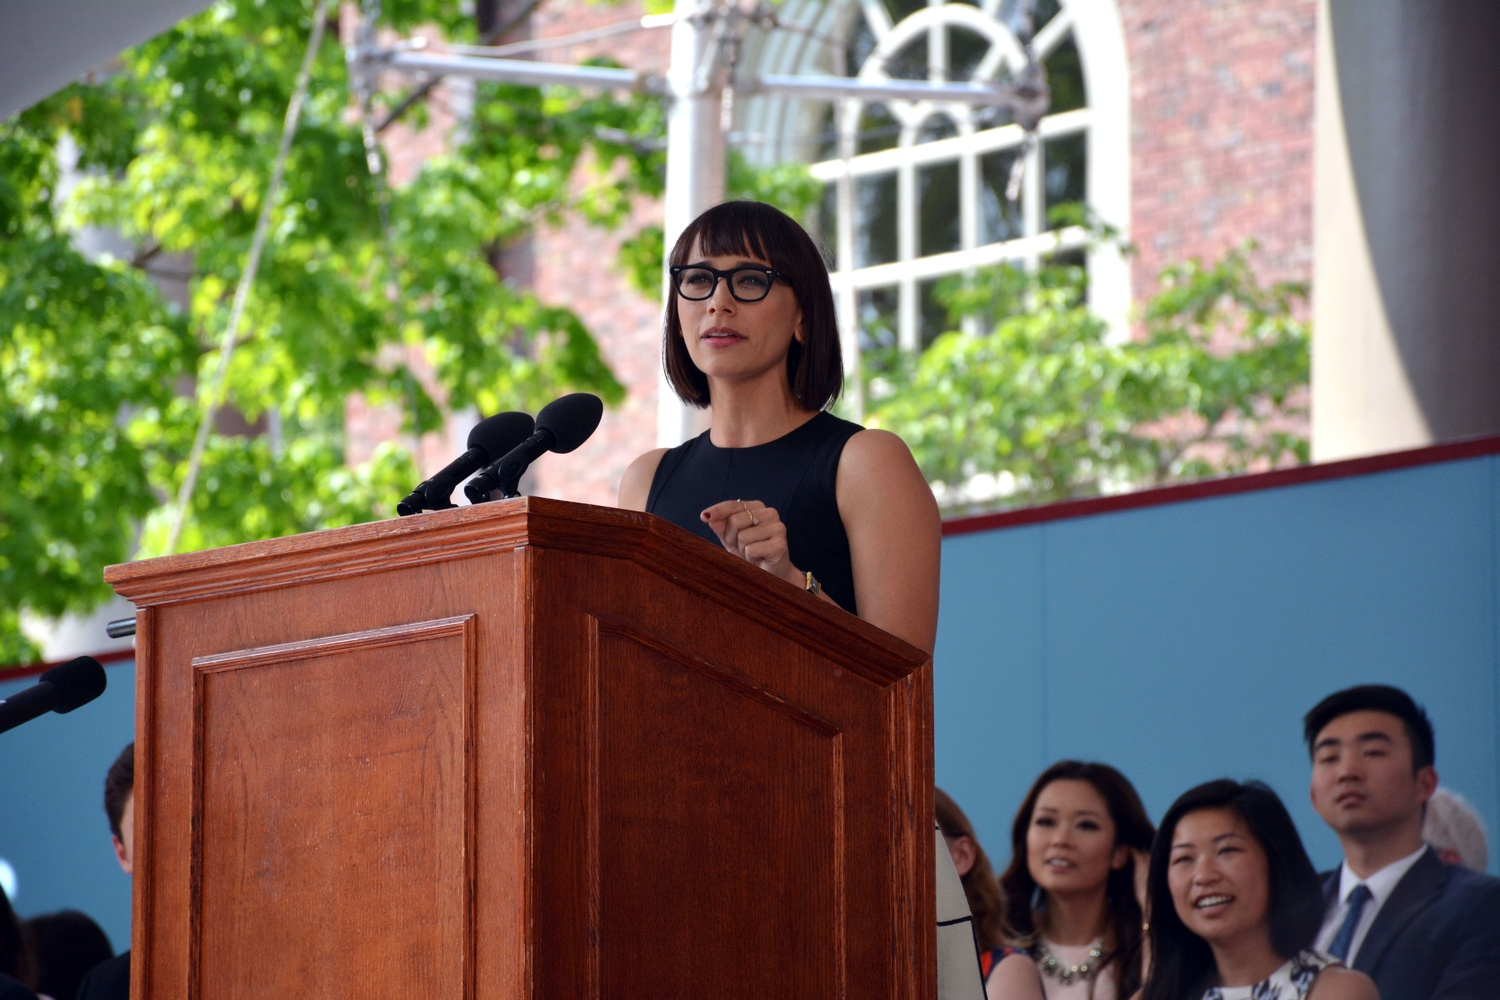 Rashida L. Jones '97 addresses the Class of 2016 at the College Class Day.  Referencing a Crimson article in which she was quoted in 1995, she advised the Class of 2016 to pull the lever on the Froyo machine of life.